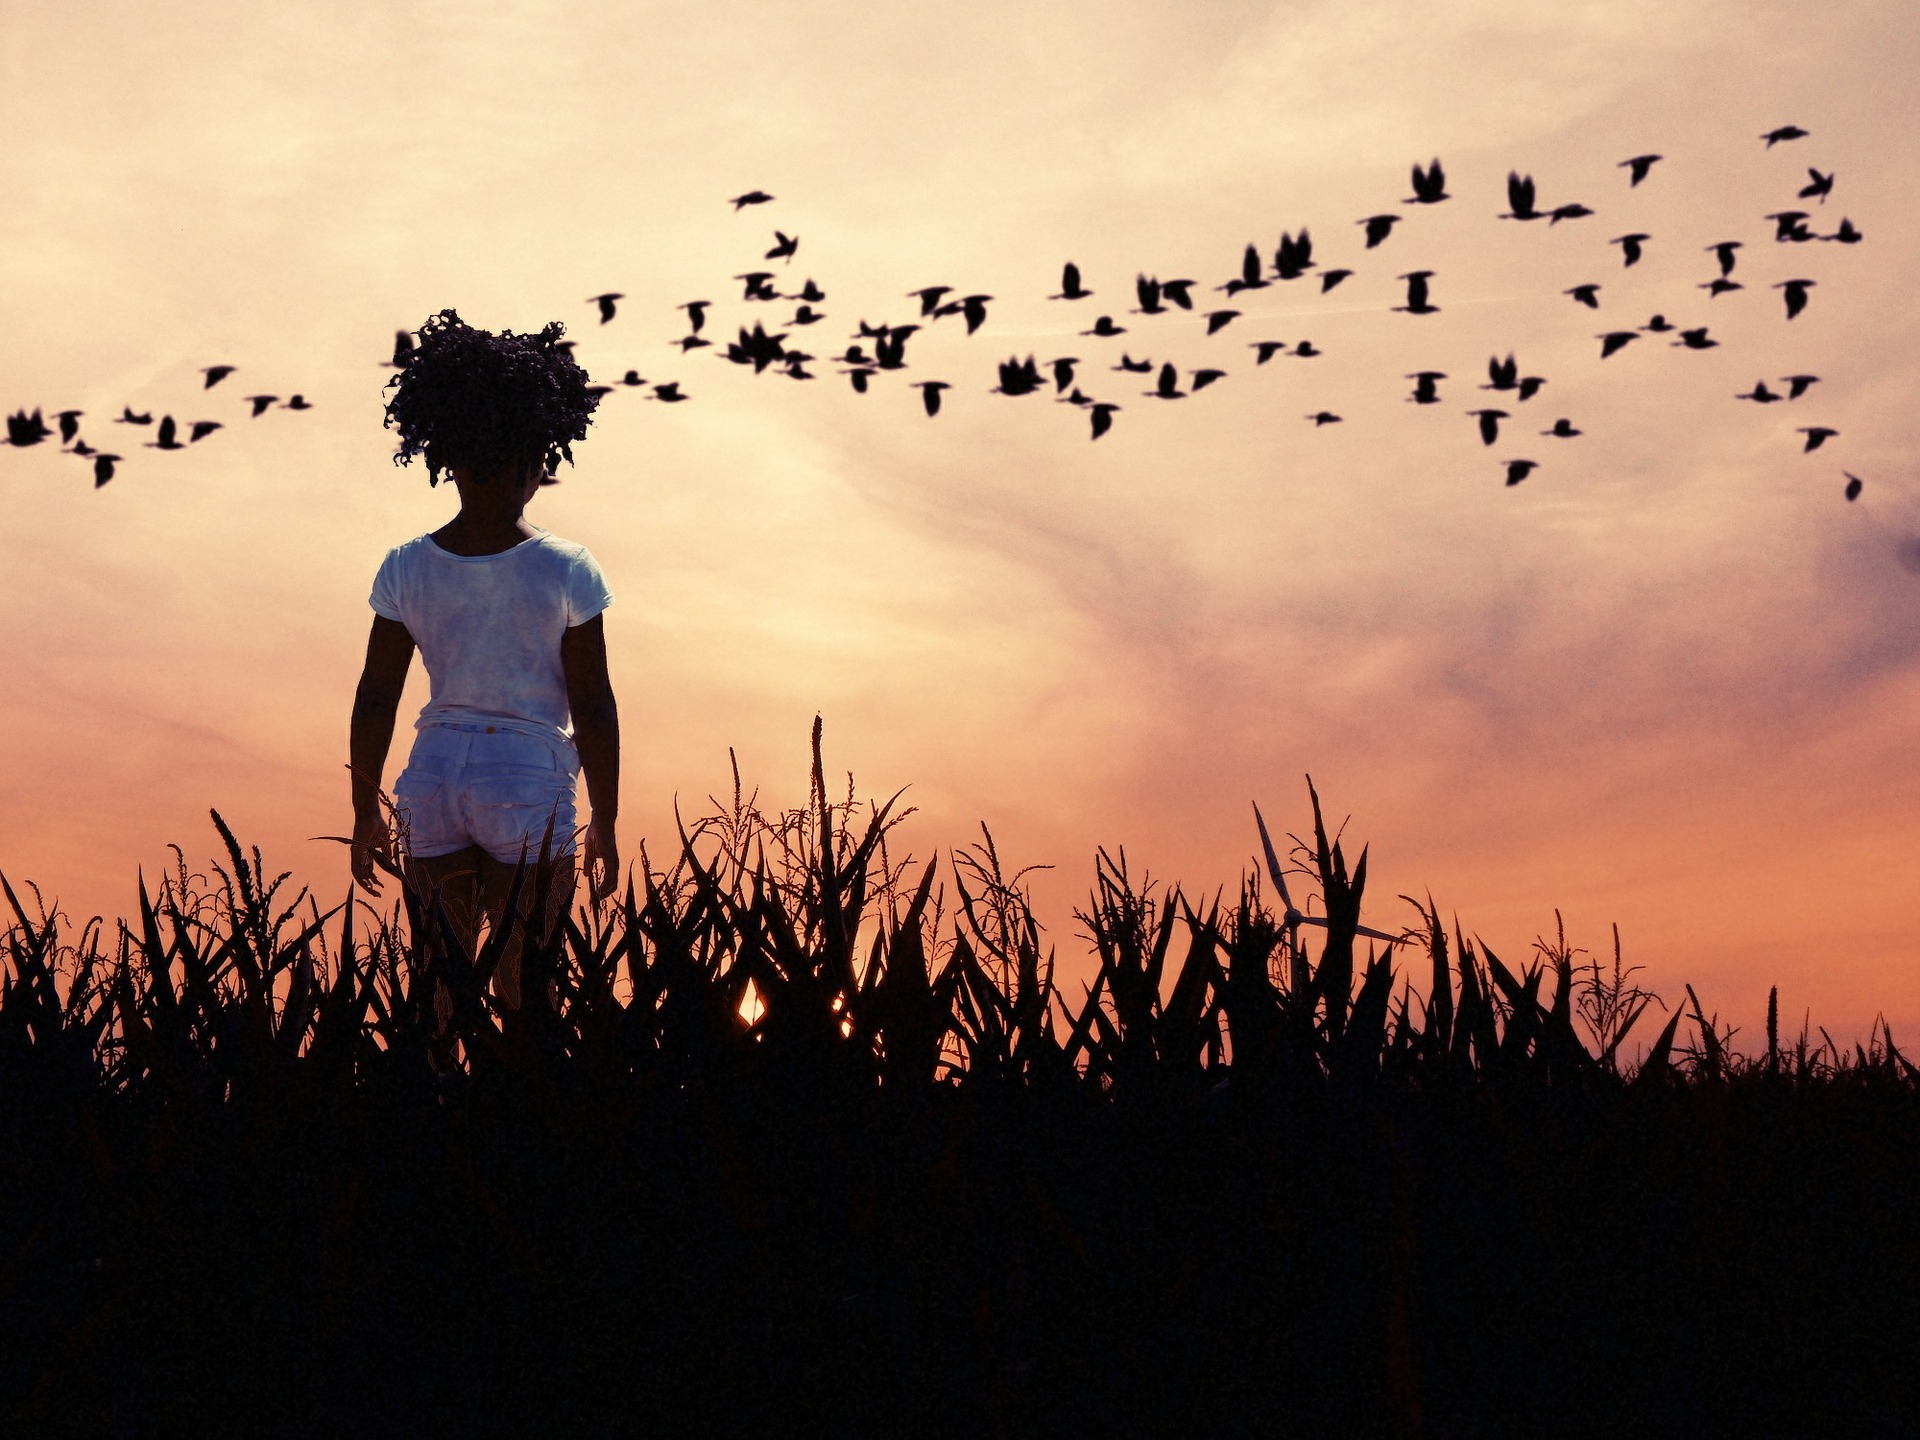 Summer sunset through short corn. Young girl watches a murder of crows stream through.